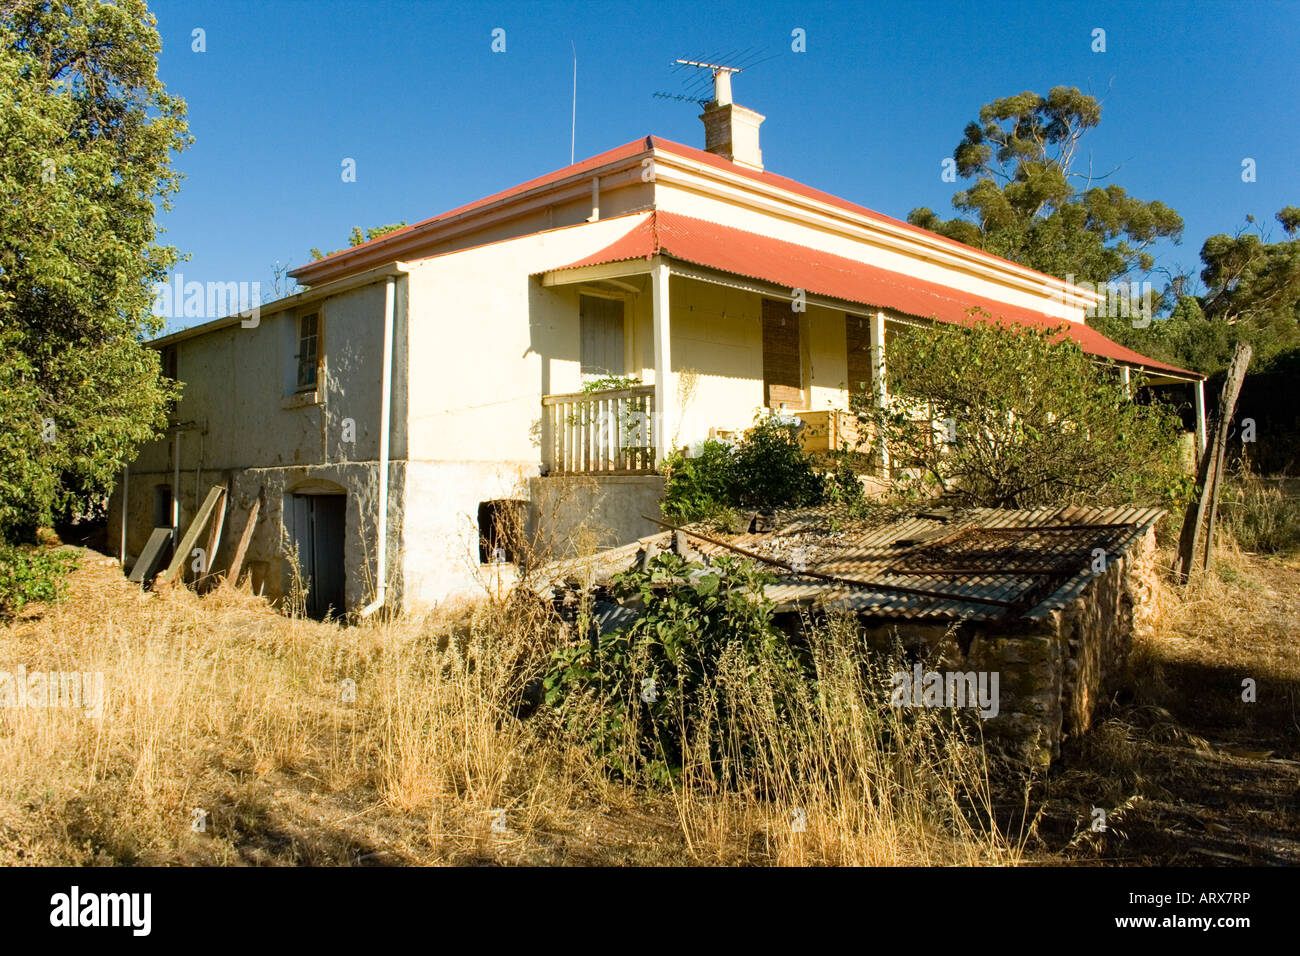 A 150 year old homestead in Australia - Stock Image